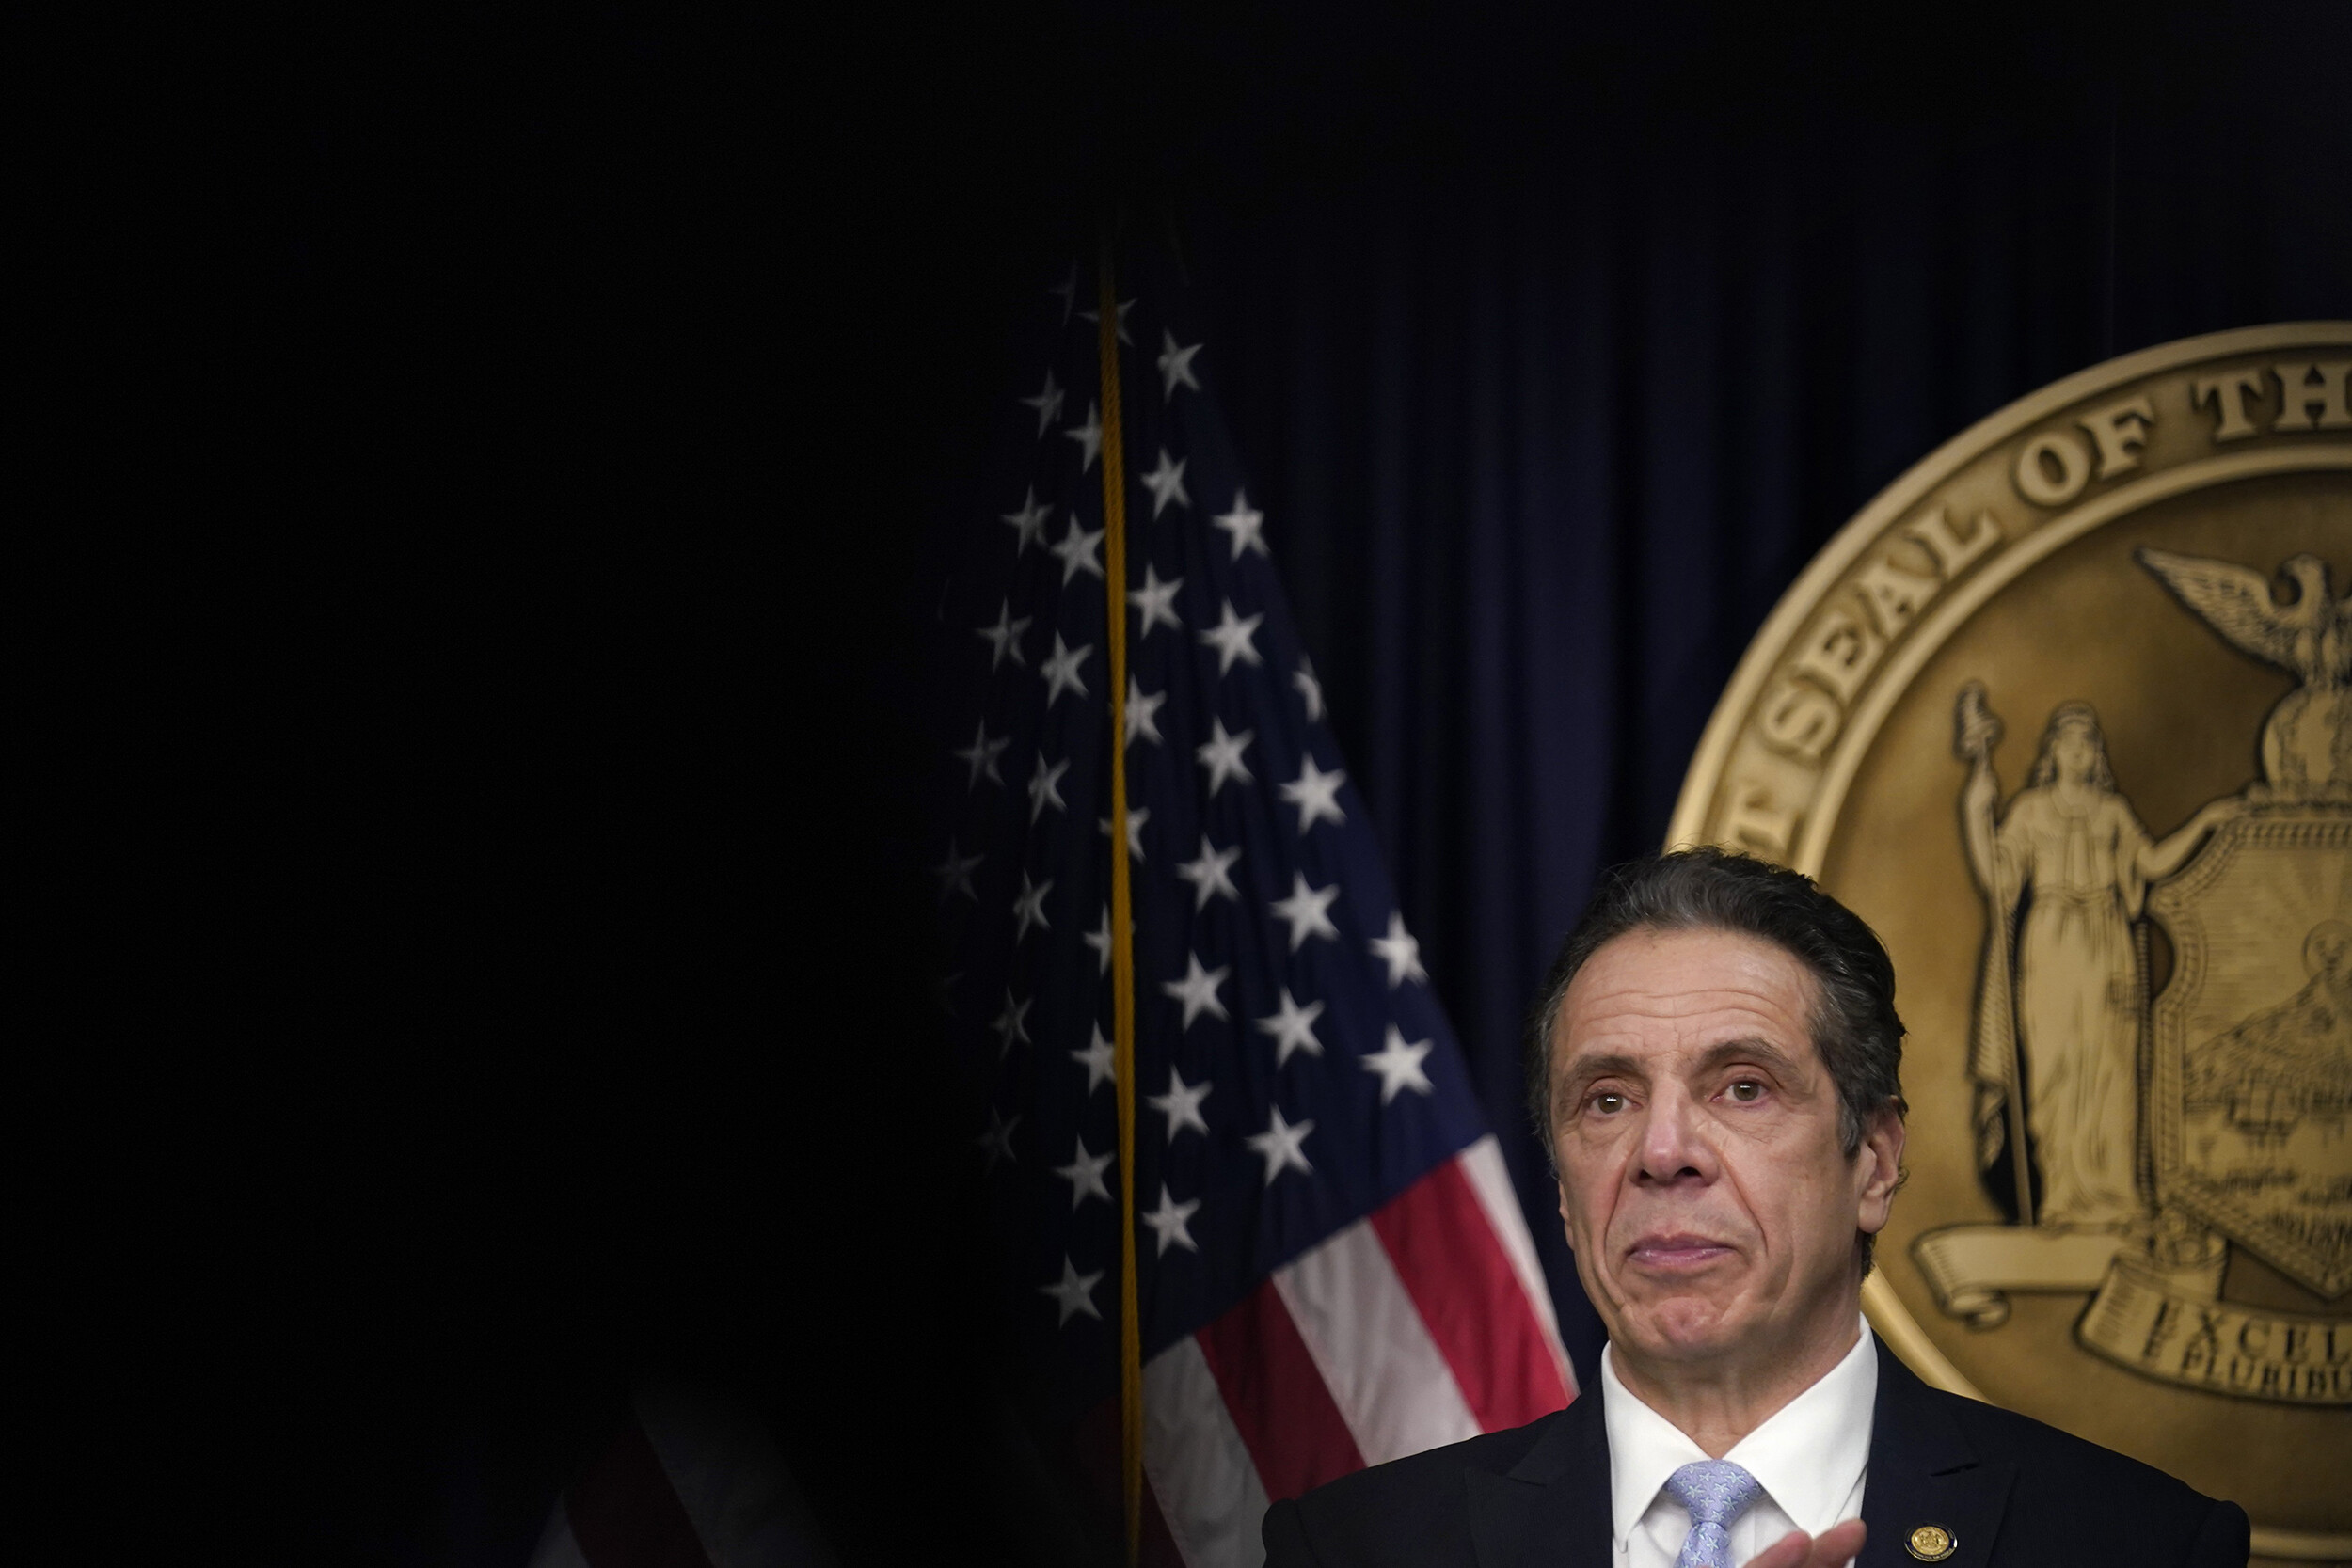 New York Times: Andrew Cuomo questioned for 11 hours by New York attorney general's office in sexual harassment inquiry